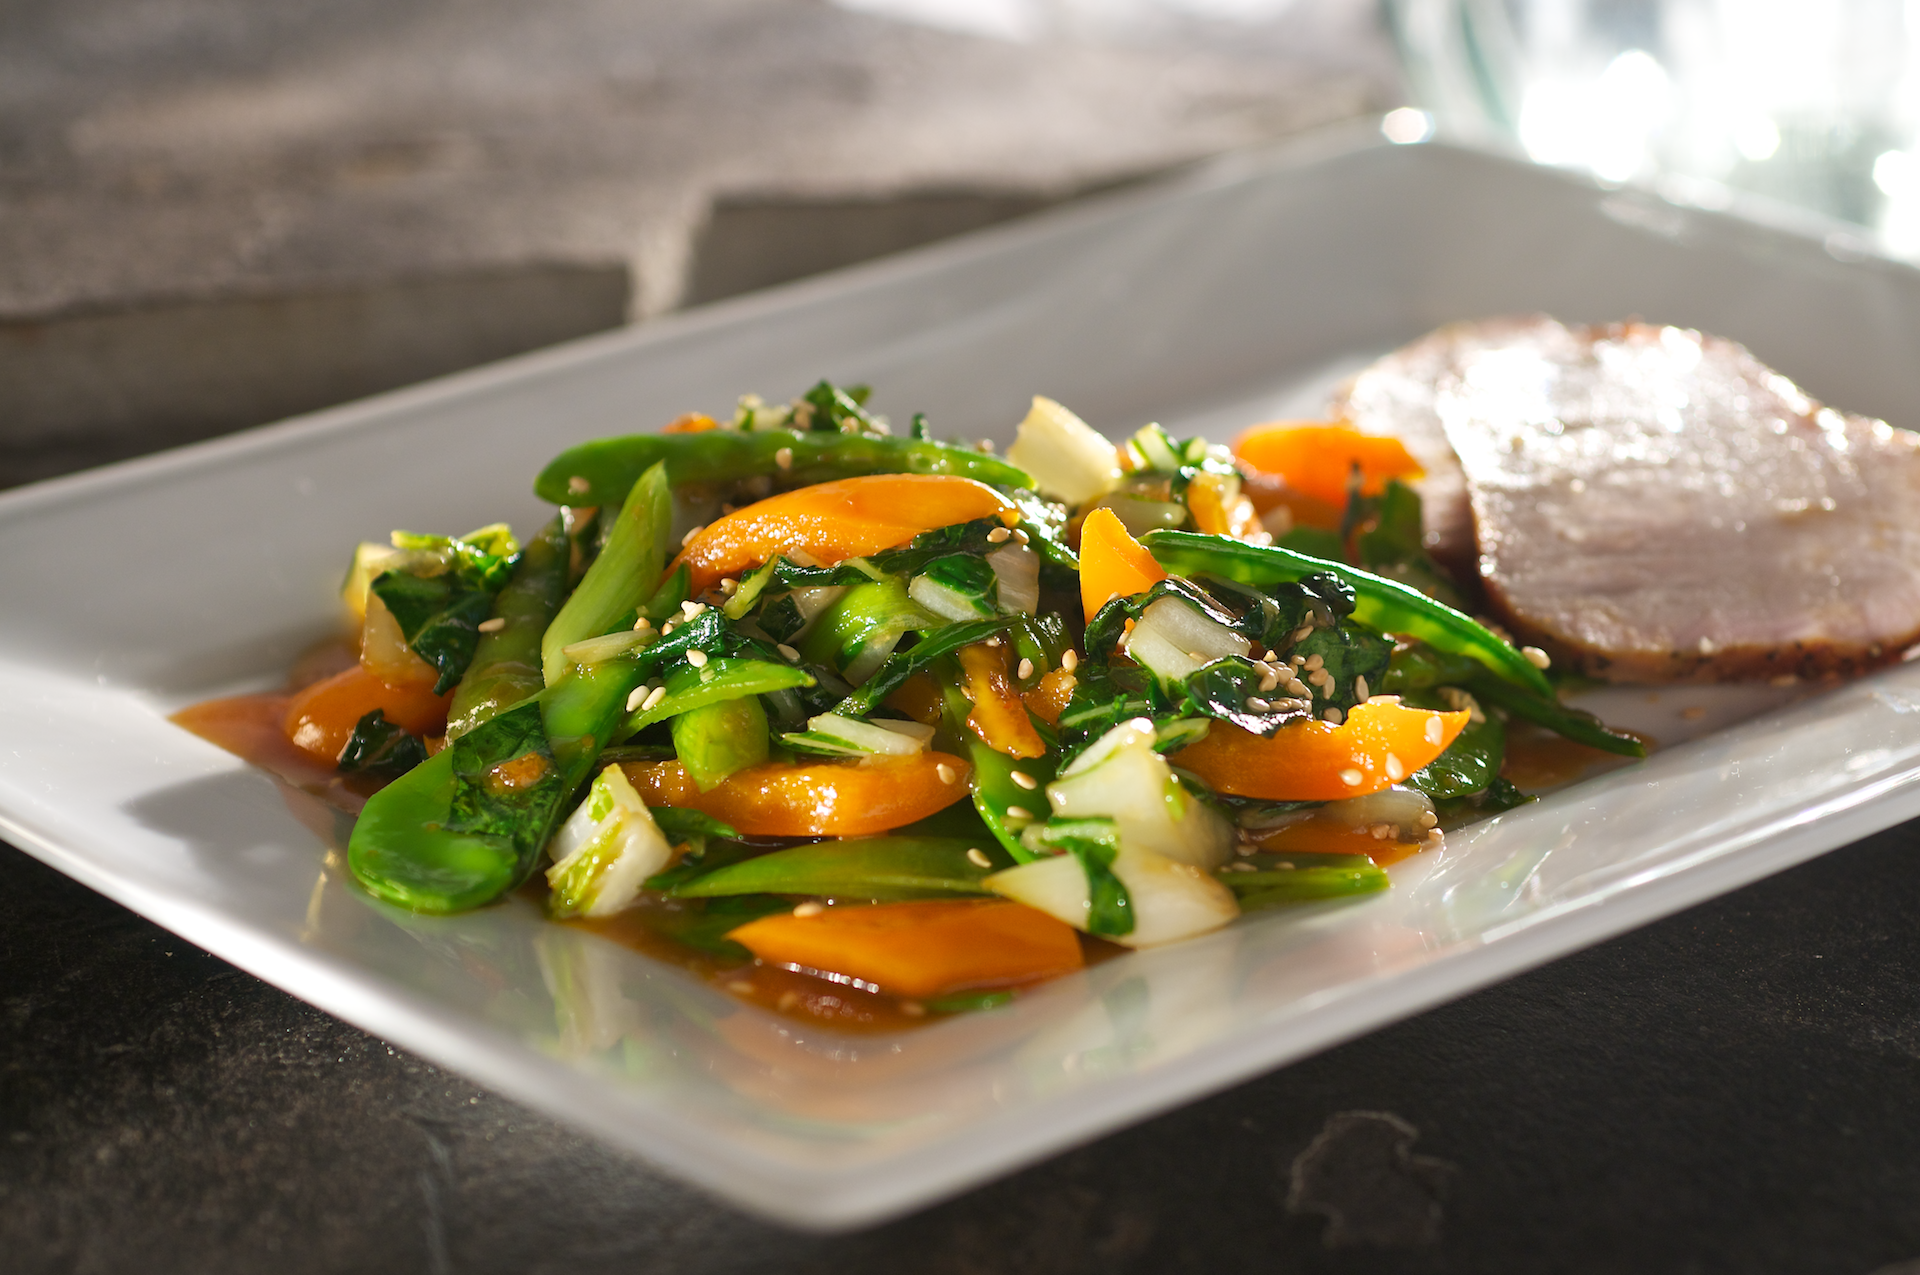 This fresh, colorful Asian vegetable stir-fry features crisp bok choy, snow peas, orange bell pepper and scallions tossed in an aromatic chili orange glaze with ginger and toasted sesame oil.